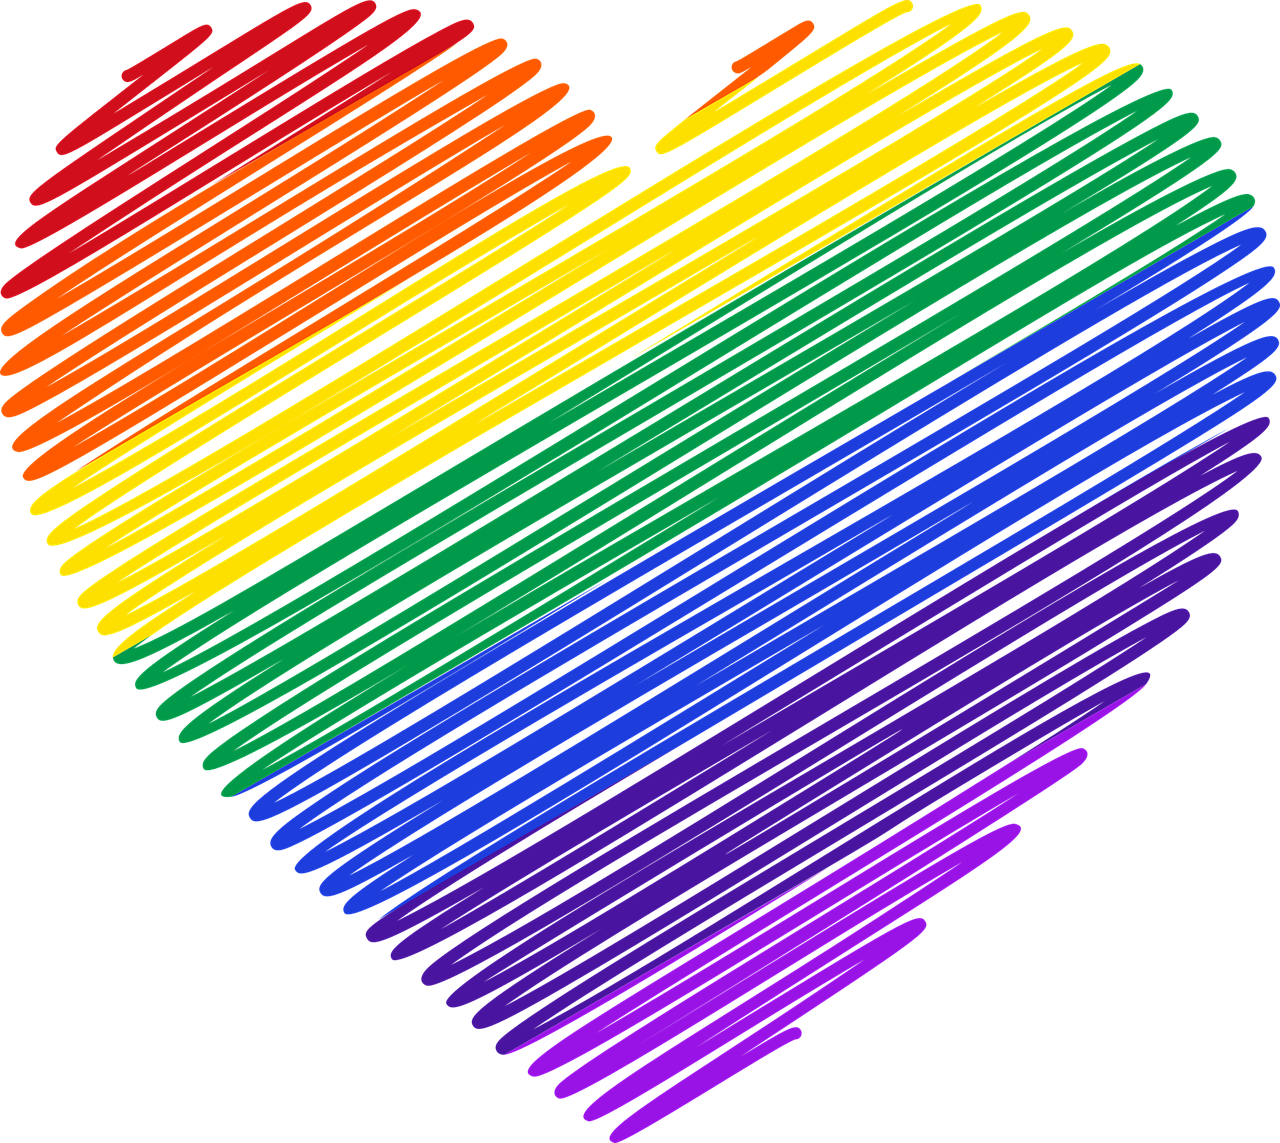 A heart in pride colors, scribbled like it was made with markers. Image credit GDJ via Pixabay.